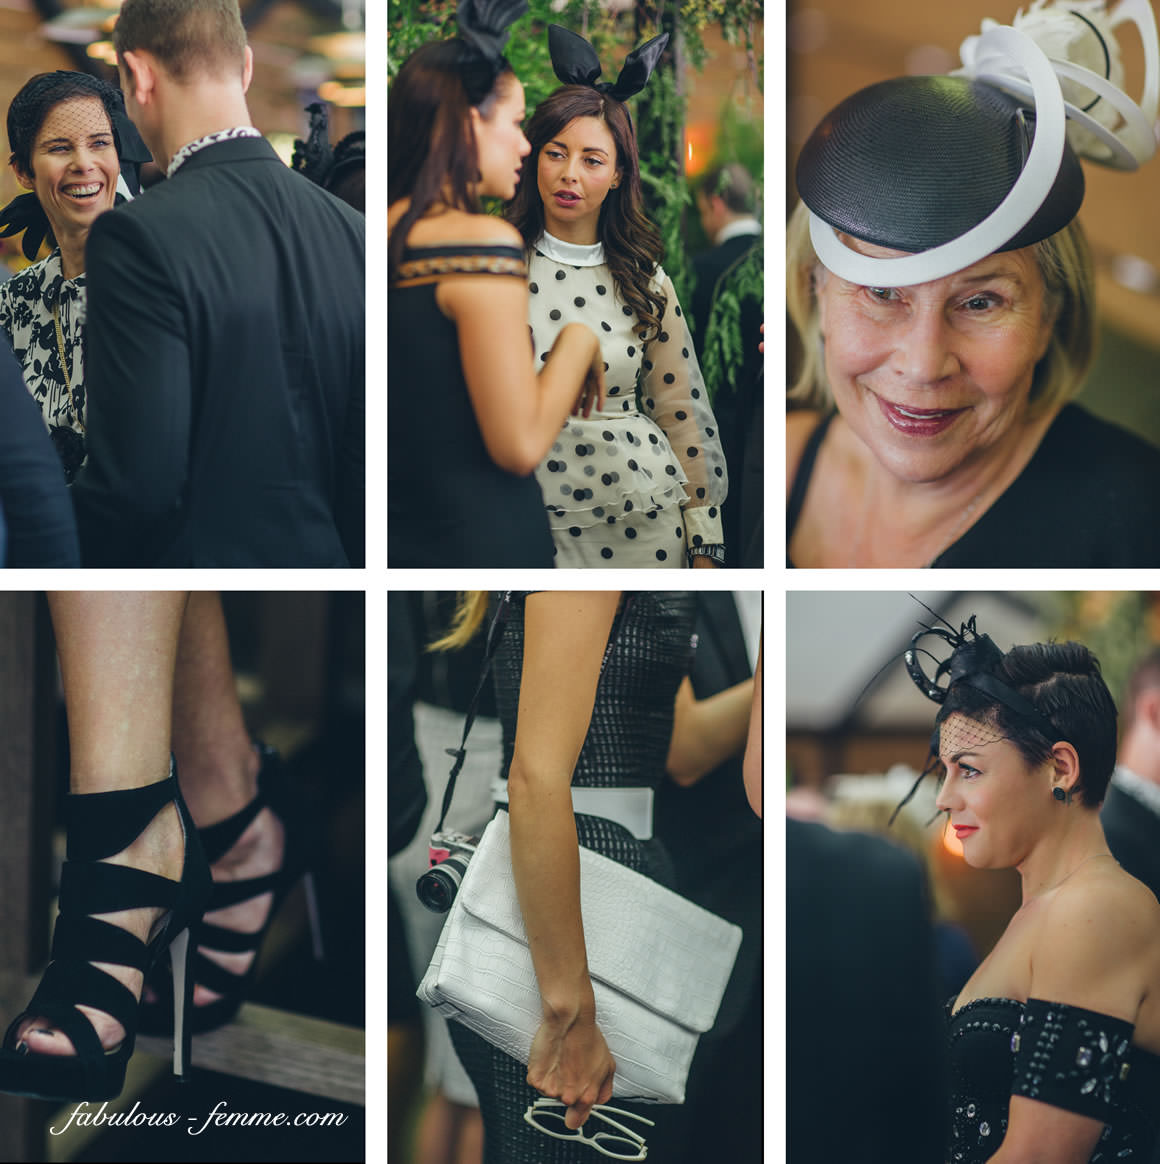 candid event photography melbourne